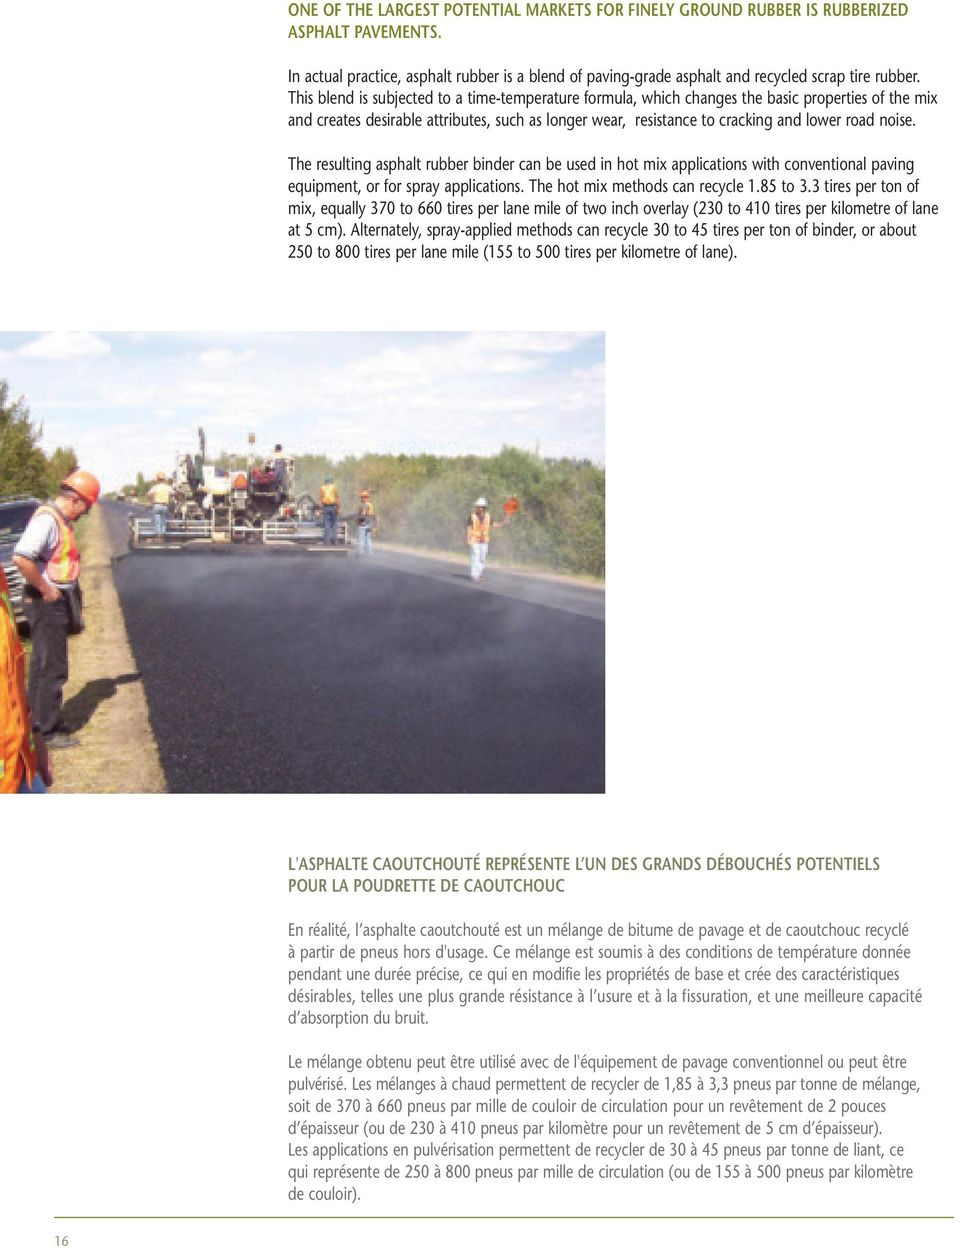 The resulting asphalt rubber binder can be used in hot mix applications with conventional paving equipment, or for spray applications. The hot mix methods can recycle 1.85 to 3.